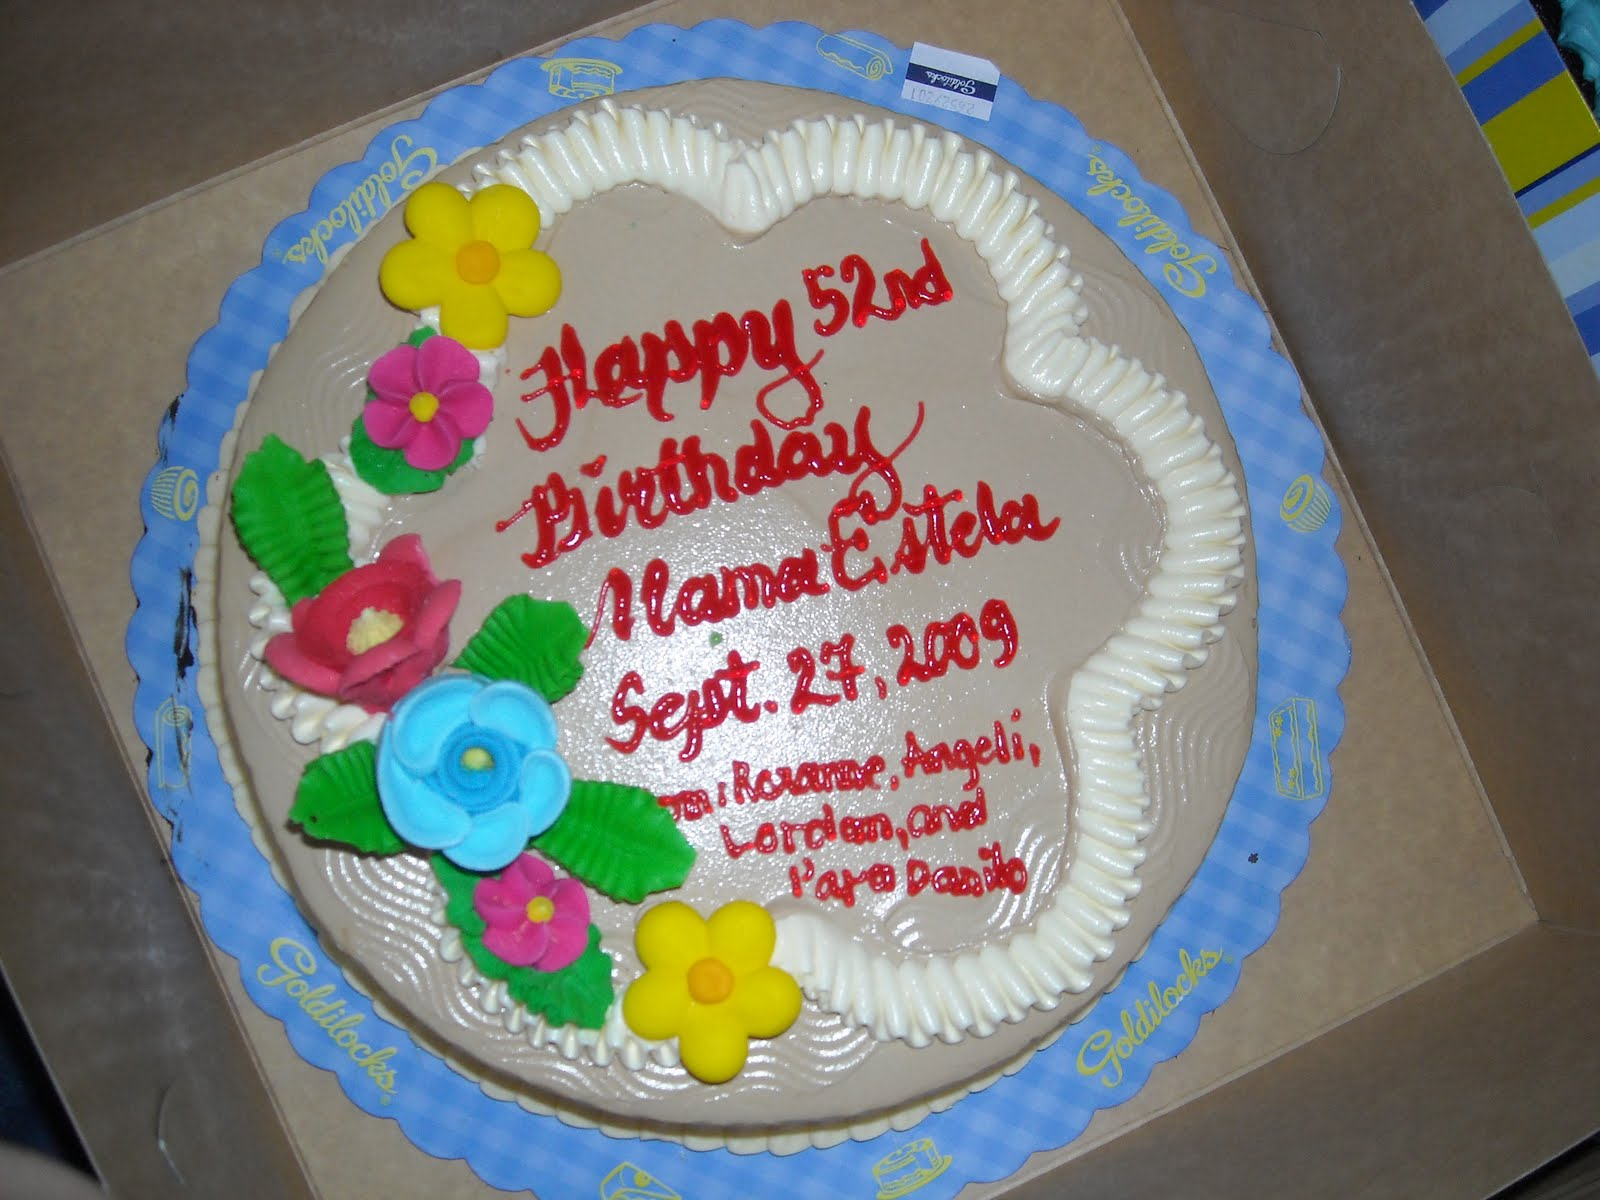 Goldilocks Cake Design For Christening : Simple Yet Rock: Pagbabago